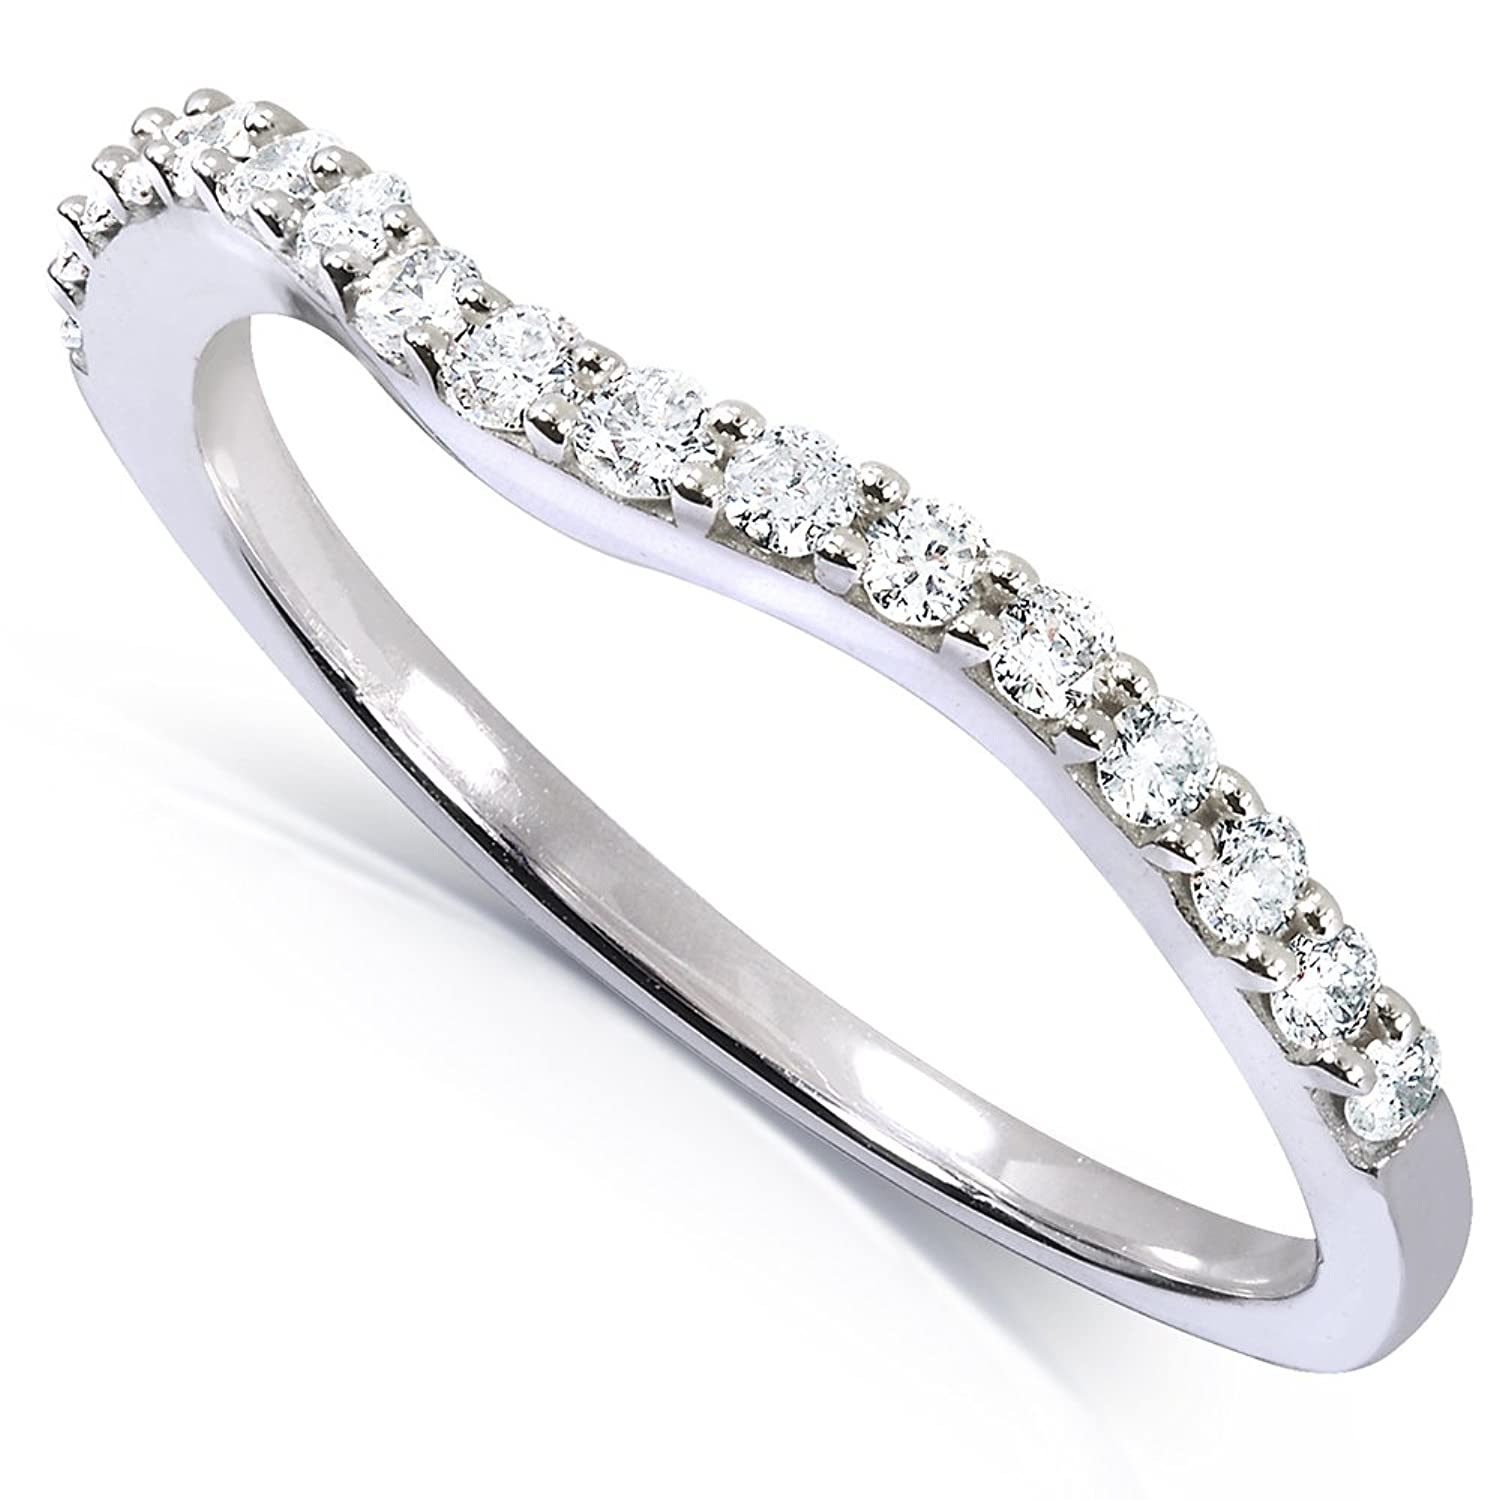 wedding cubic ct round product silver overstock solitaire band zirc set shipping free jewelry with sterling watches today acbe cz includes ring rings curved